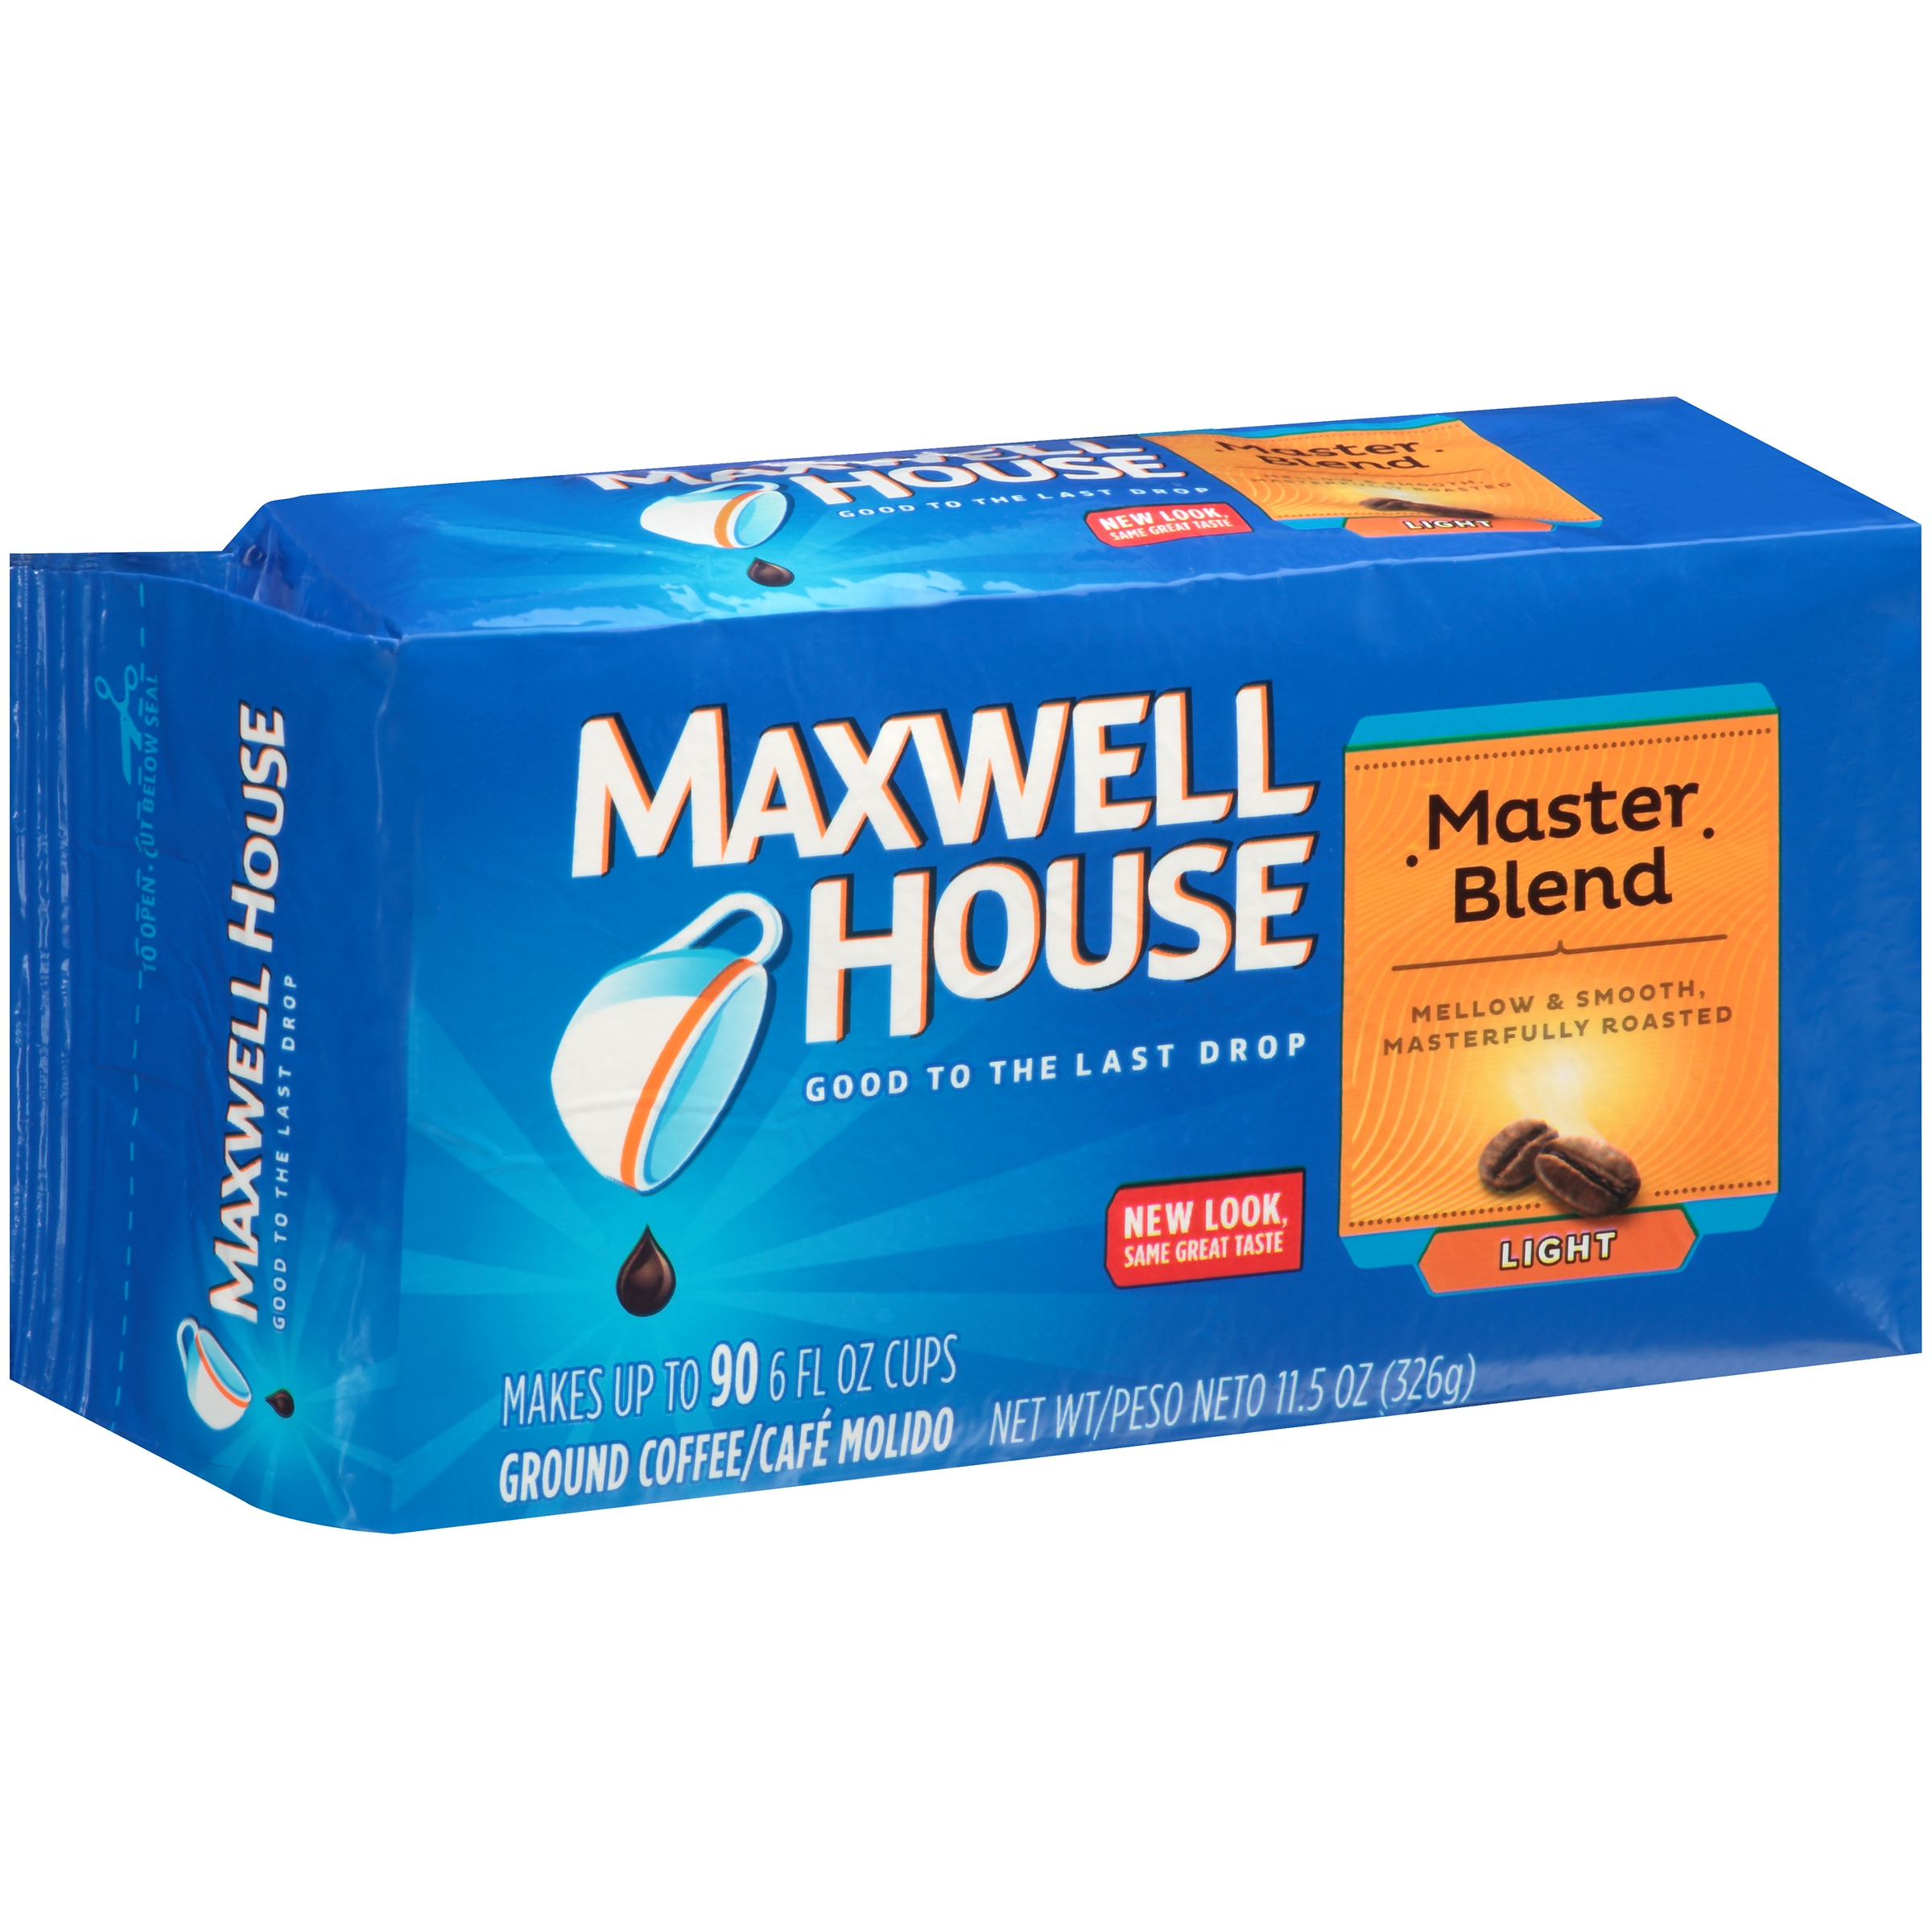 Maxwell House Master Blend Light Roast Ground Coffee, 11.5 OZ (326g) Brick